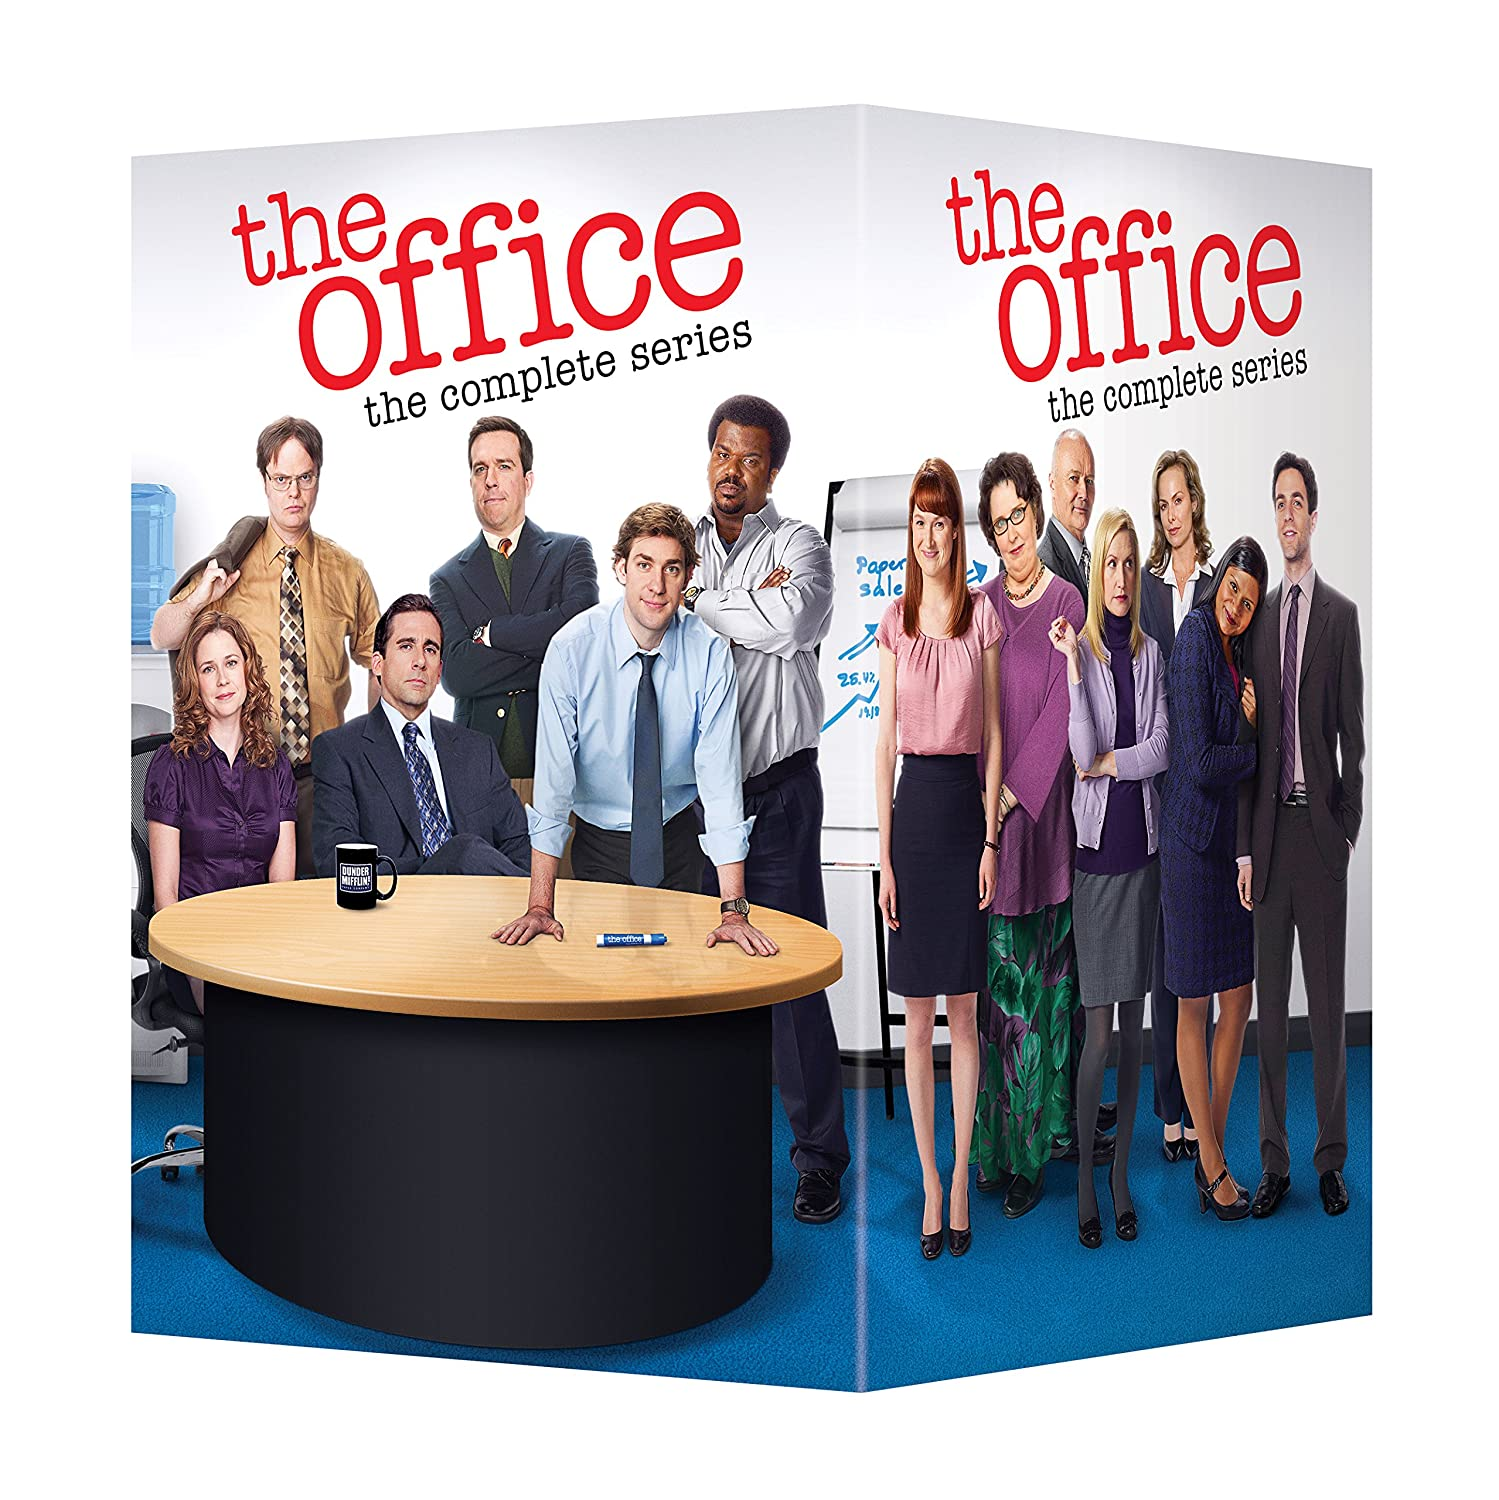 Amazon.com: The Office: The Complete Series: Steve Carell, Ed Helms ...